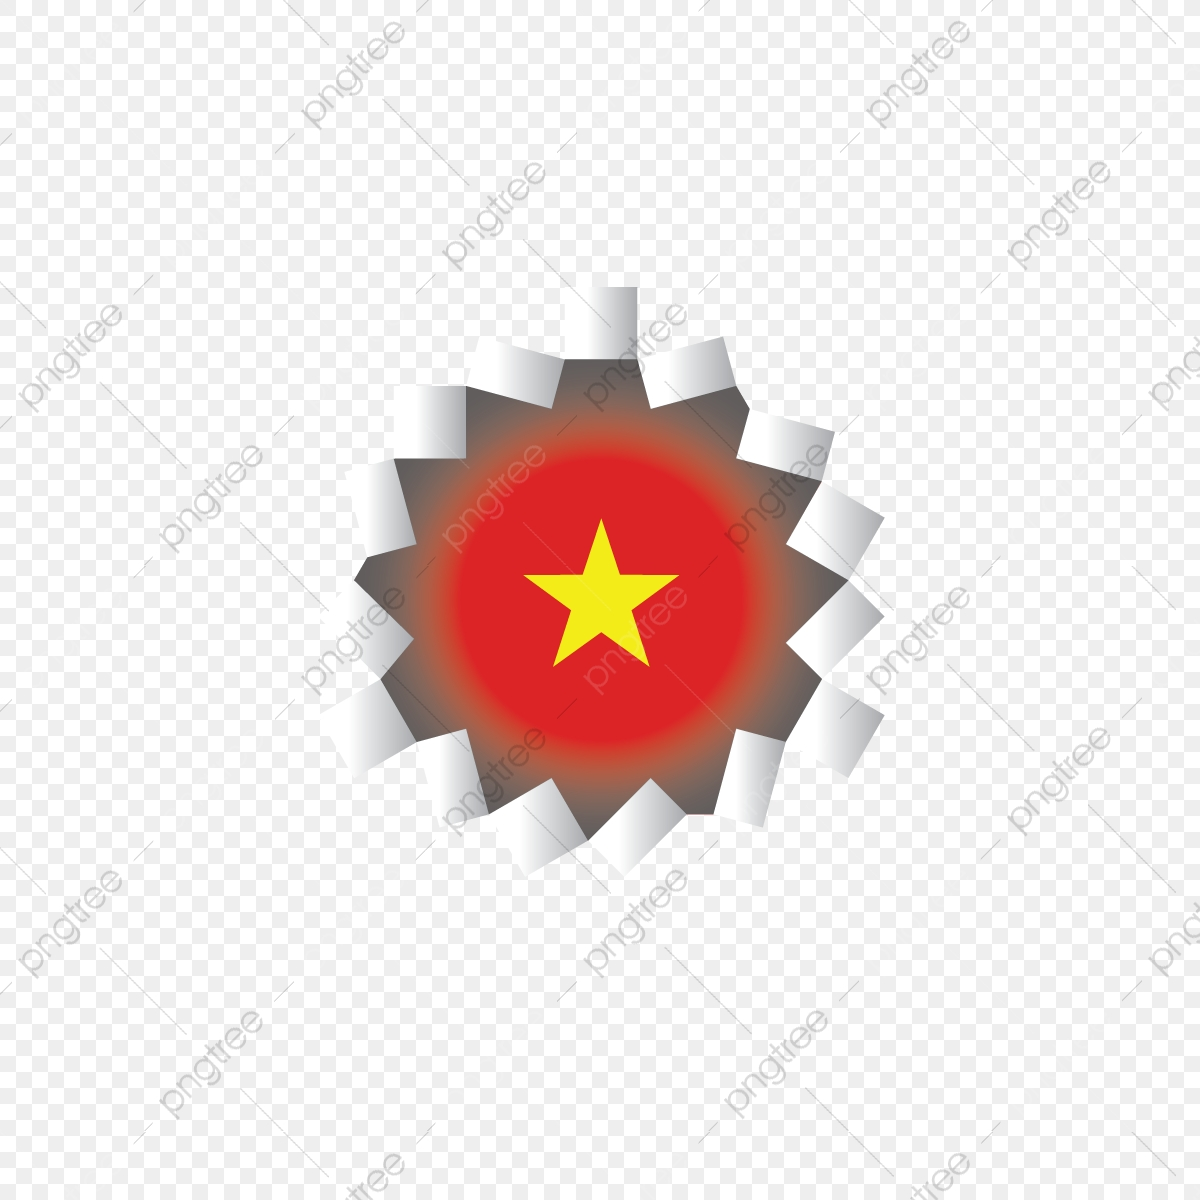 Vietnam Flag Rupture Of Paper Paper Rupture Background Png And Vector With Transparent Background For Free Download